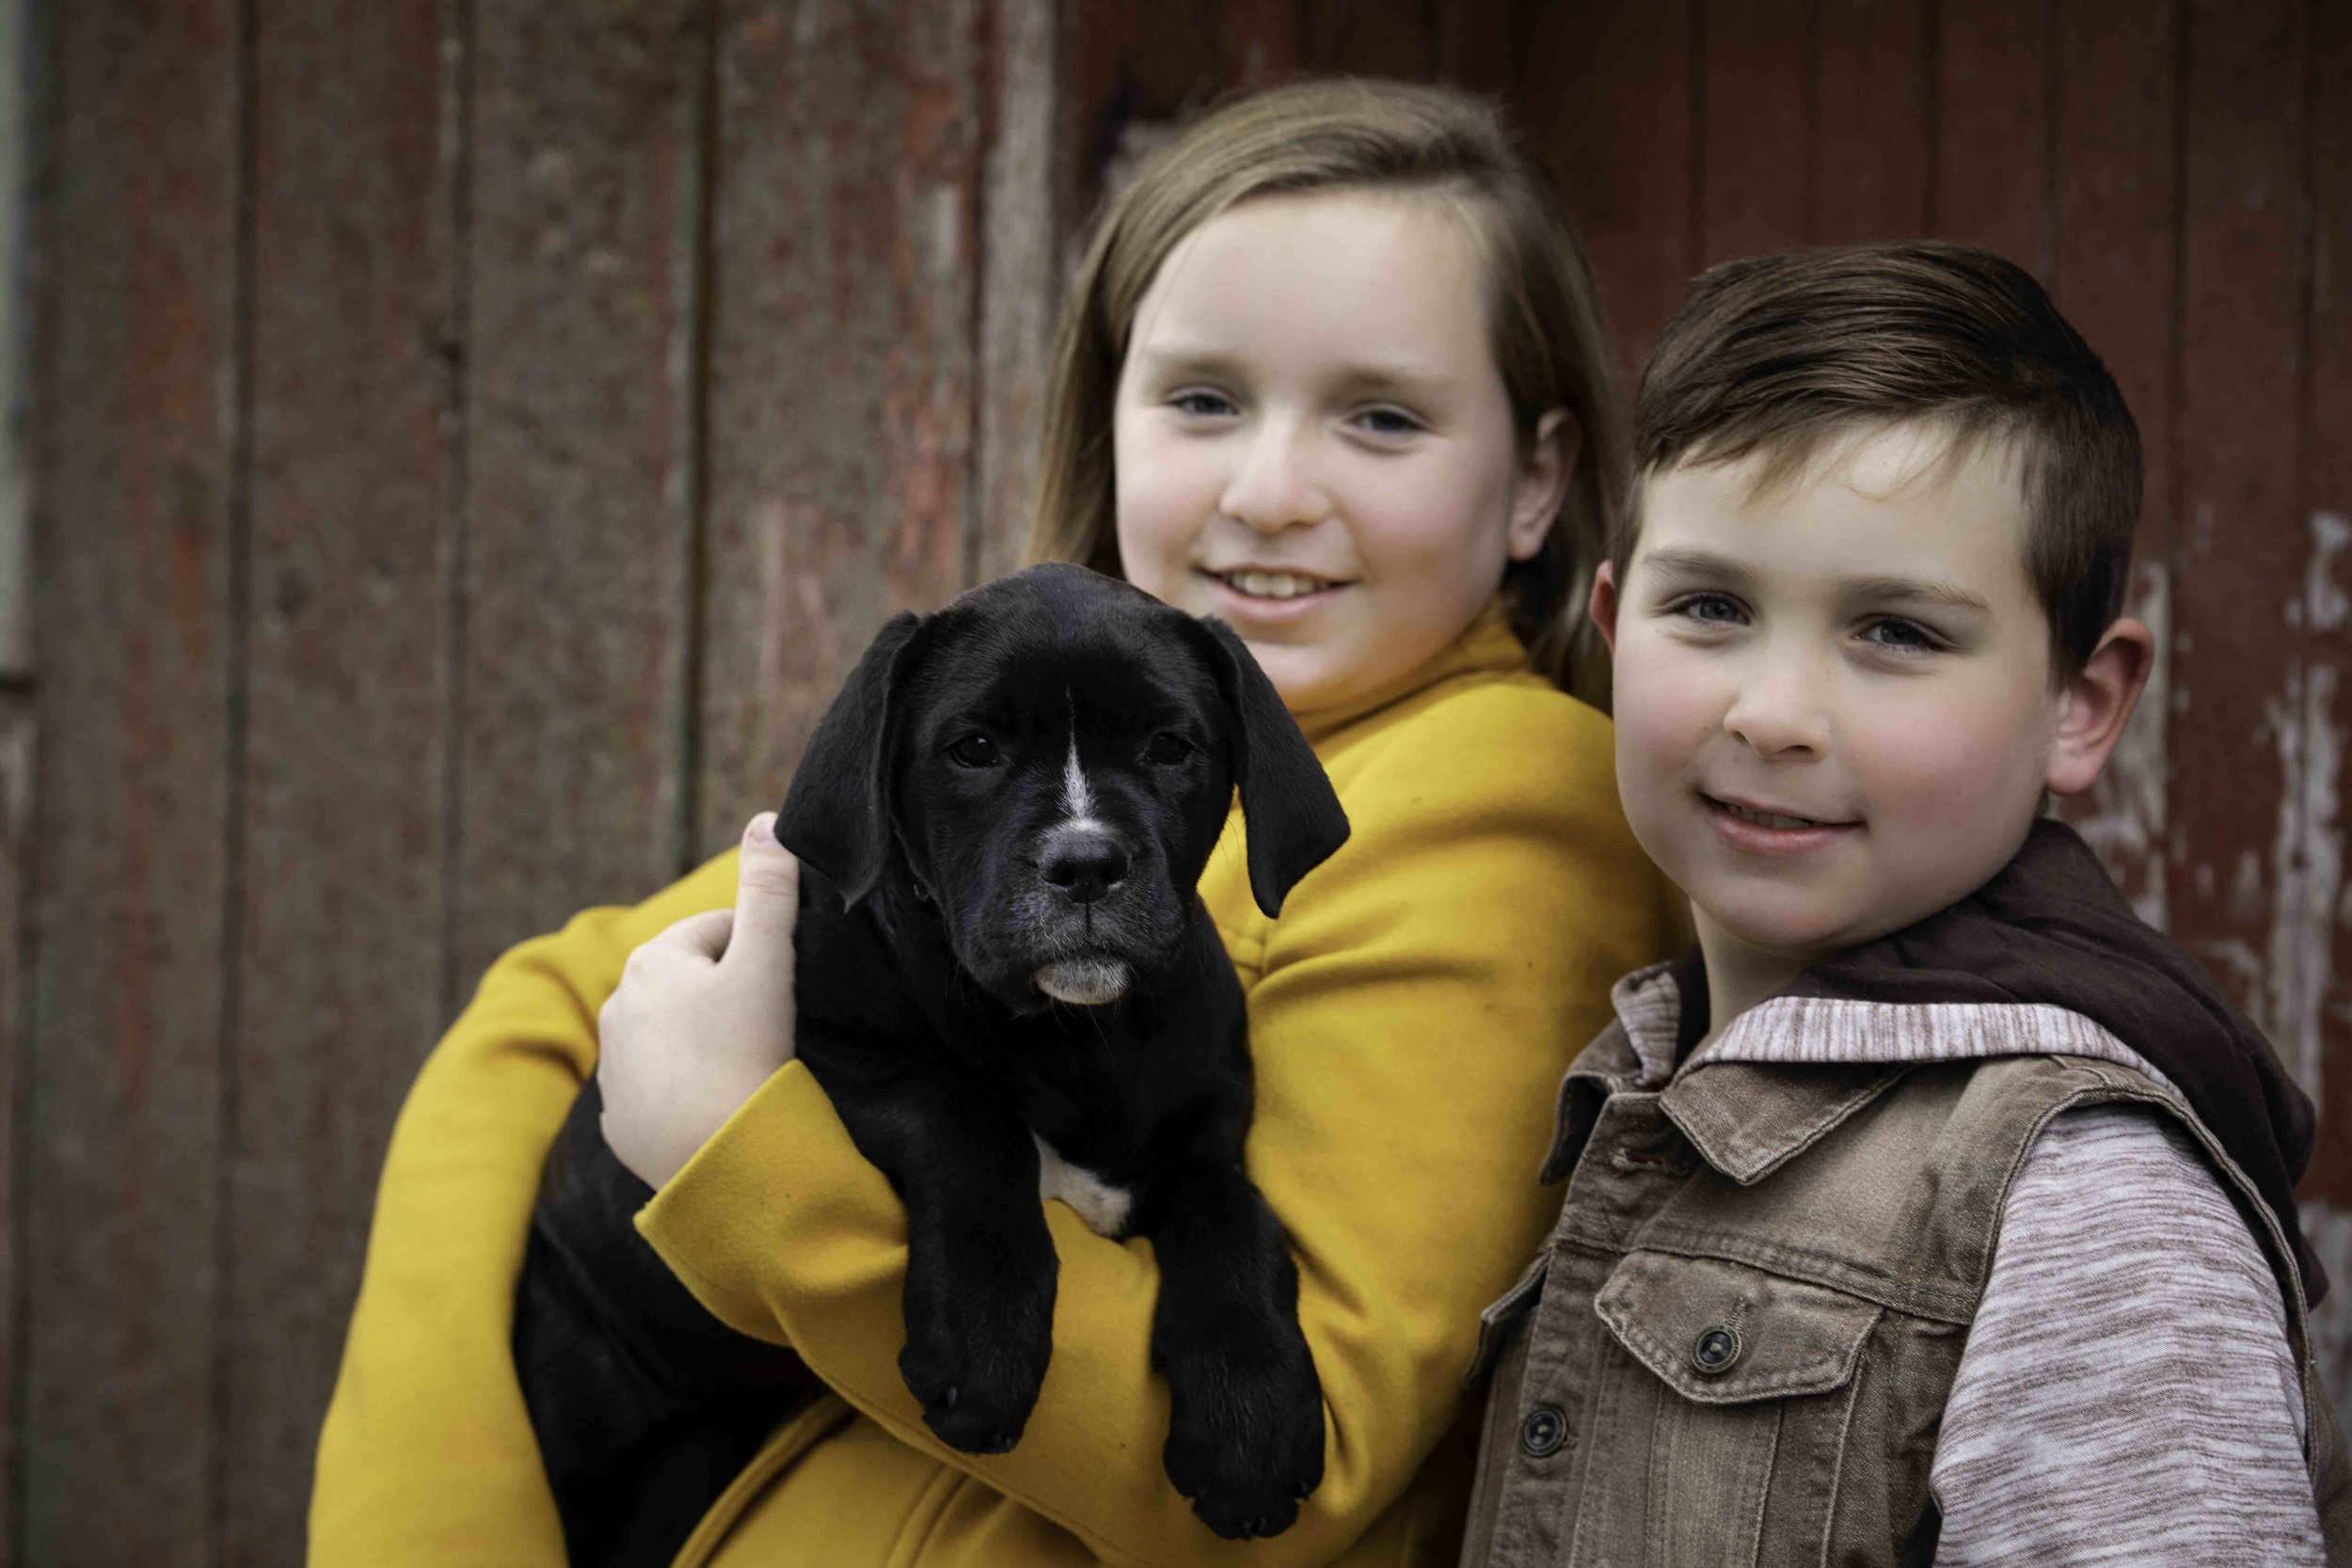 Jodie-Aldred-Photography-Chatham-Kent-Elgin-Middlesex-London-Ontario-Farm-Family-puppy.jpg